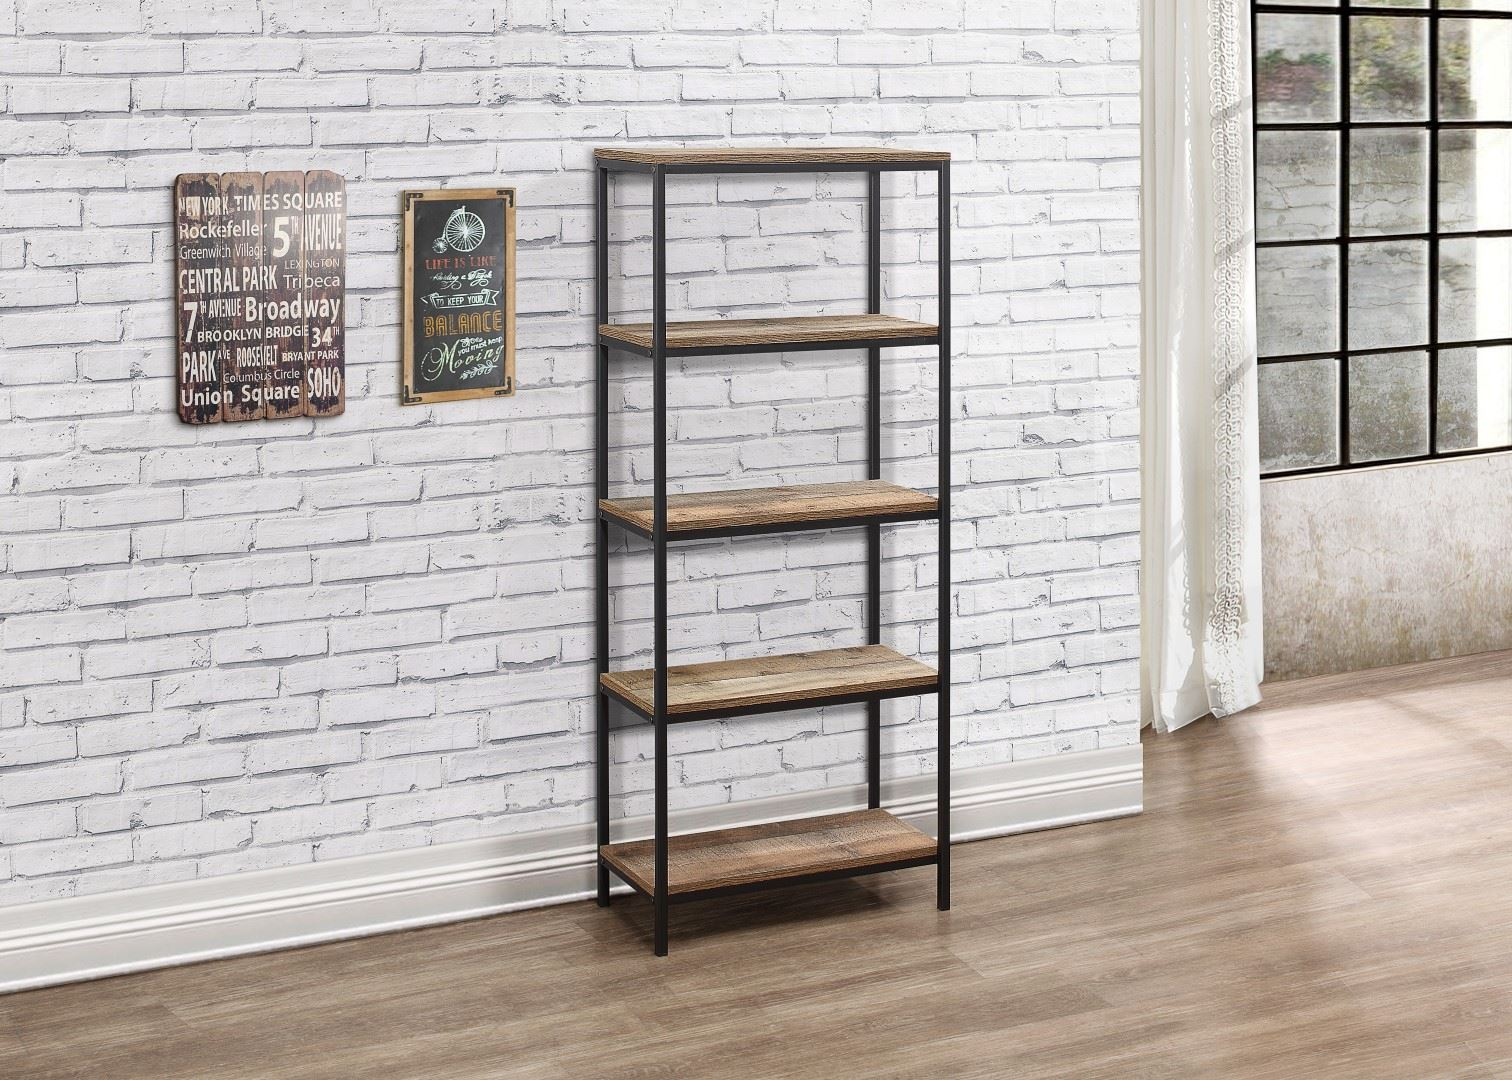 Birlea Urban Industrial Chic 5 Tier Shelving Unit Bookcase Shelves Wood Metal